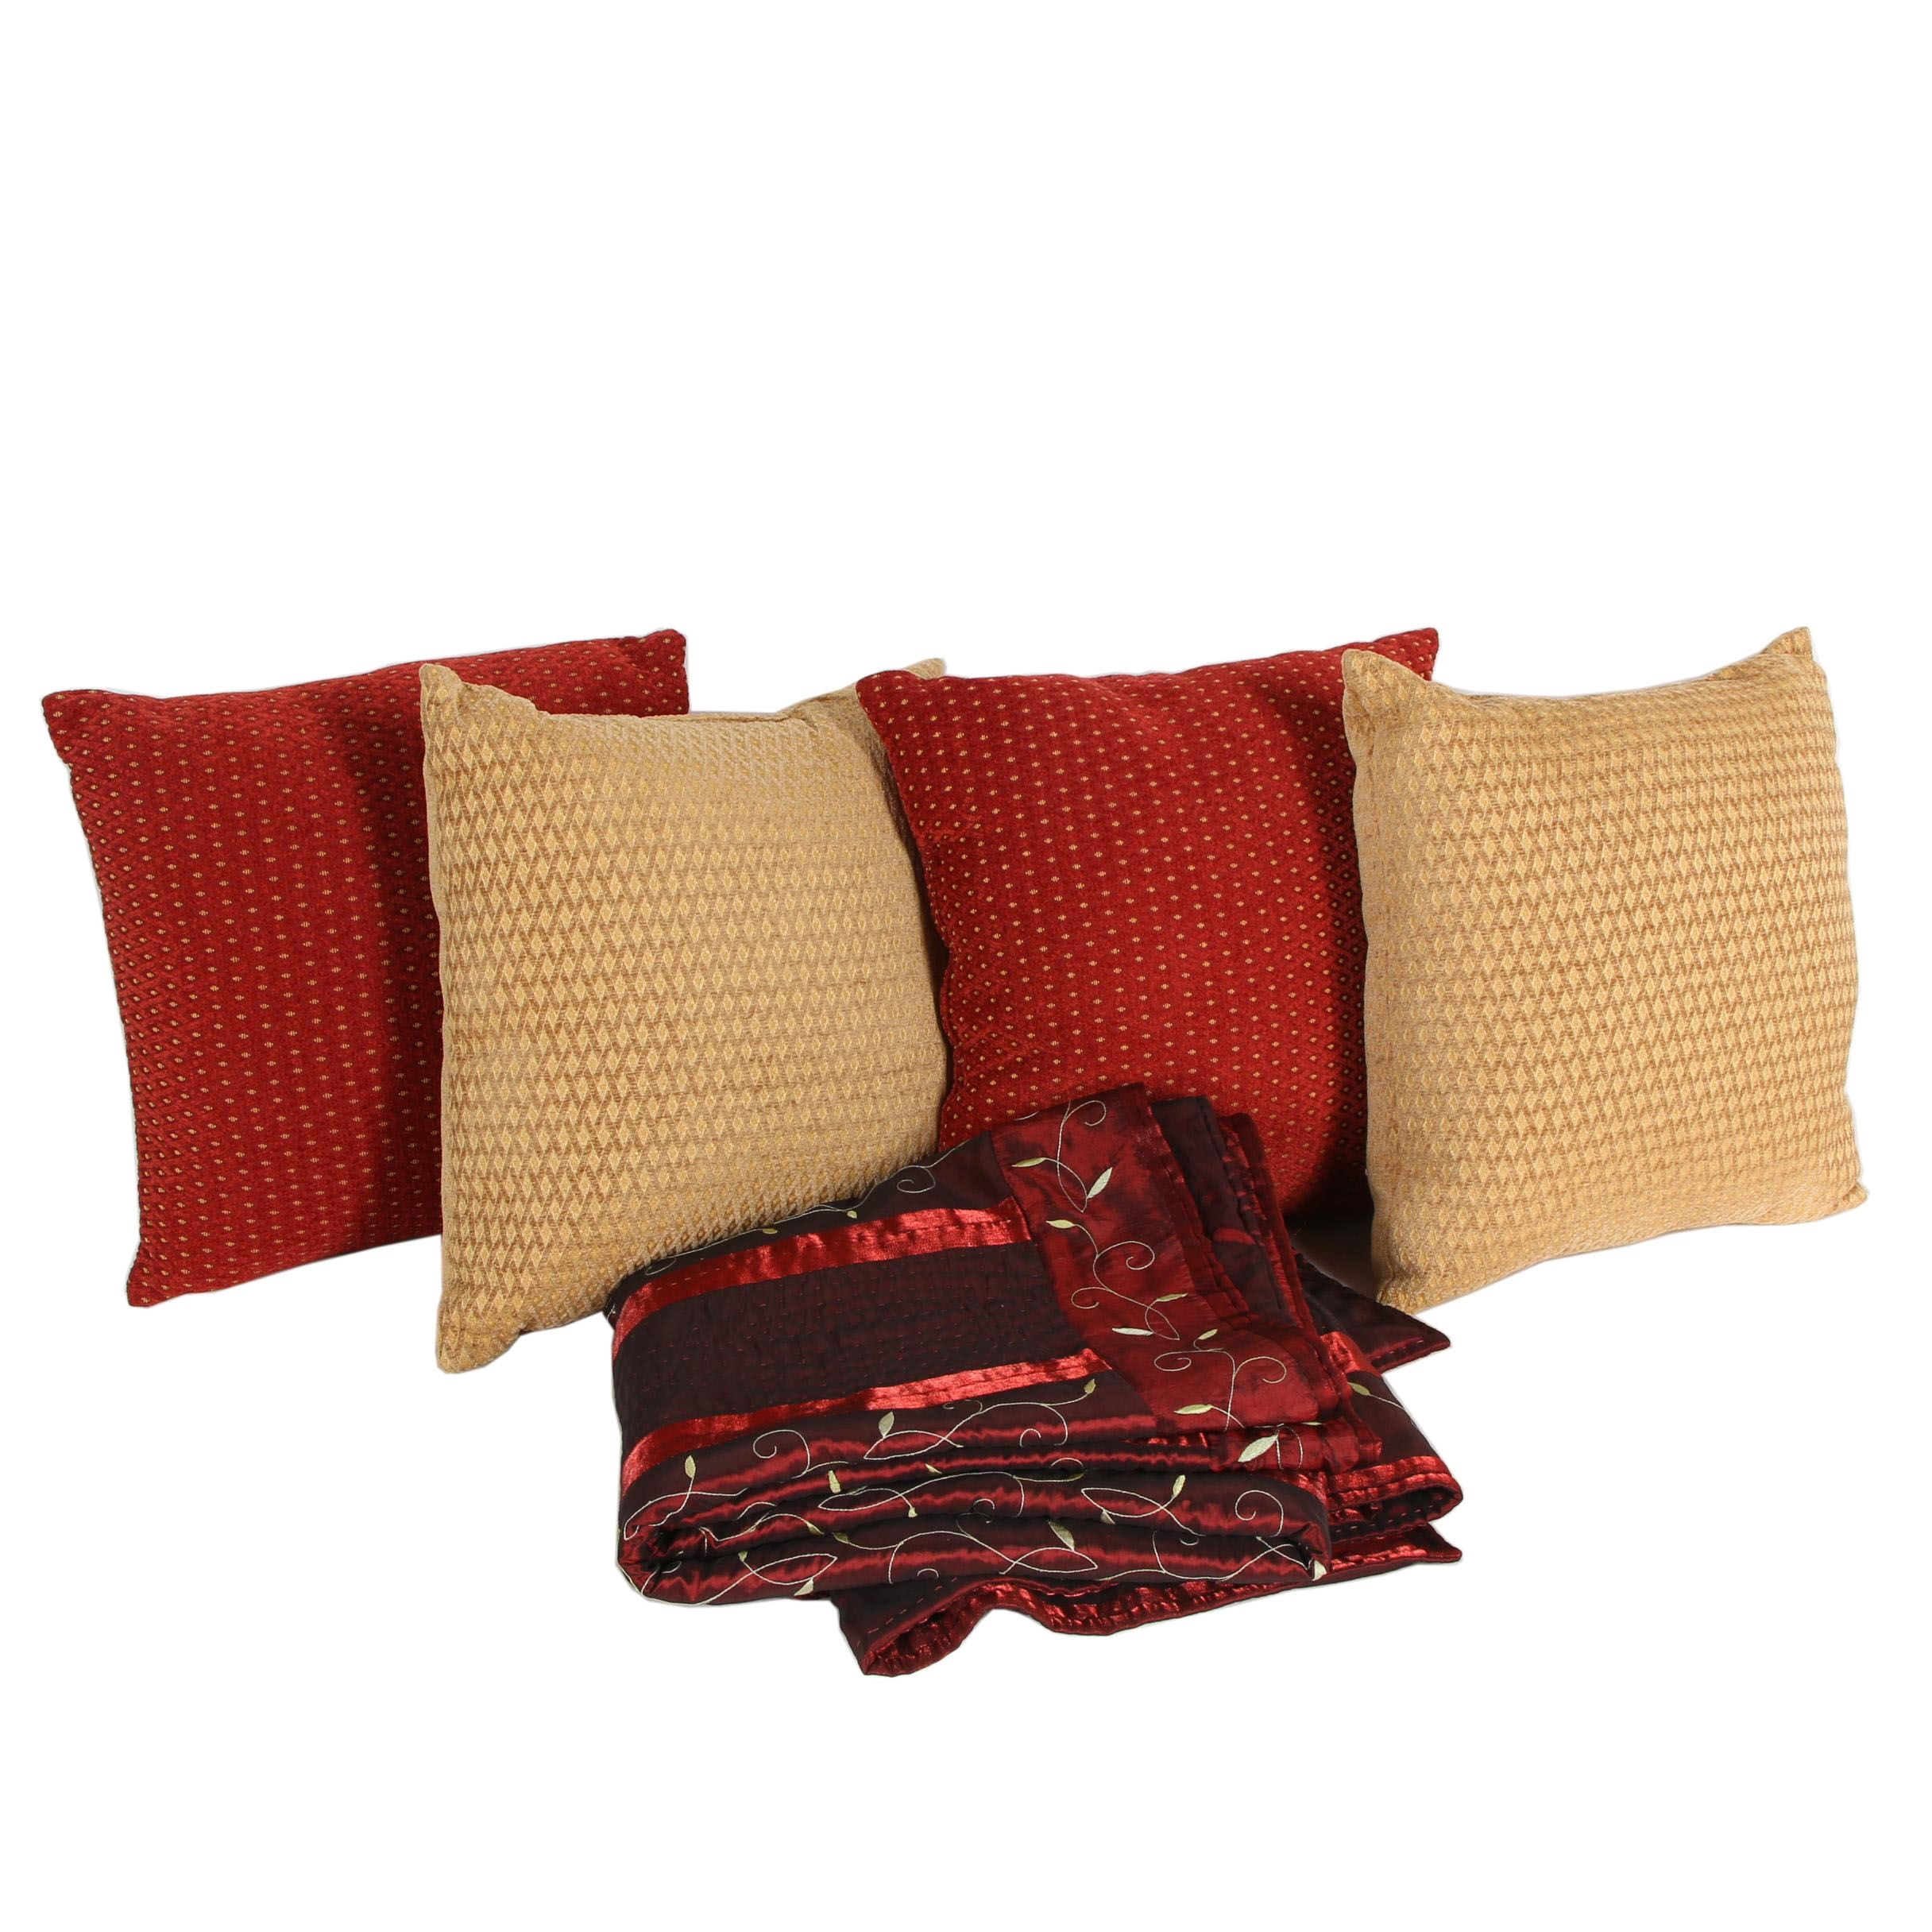 Embroidered Quilted Throw with Pillows